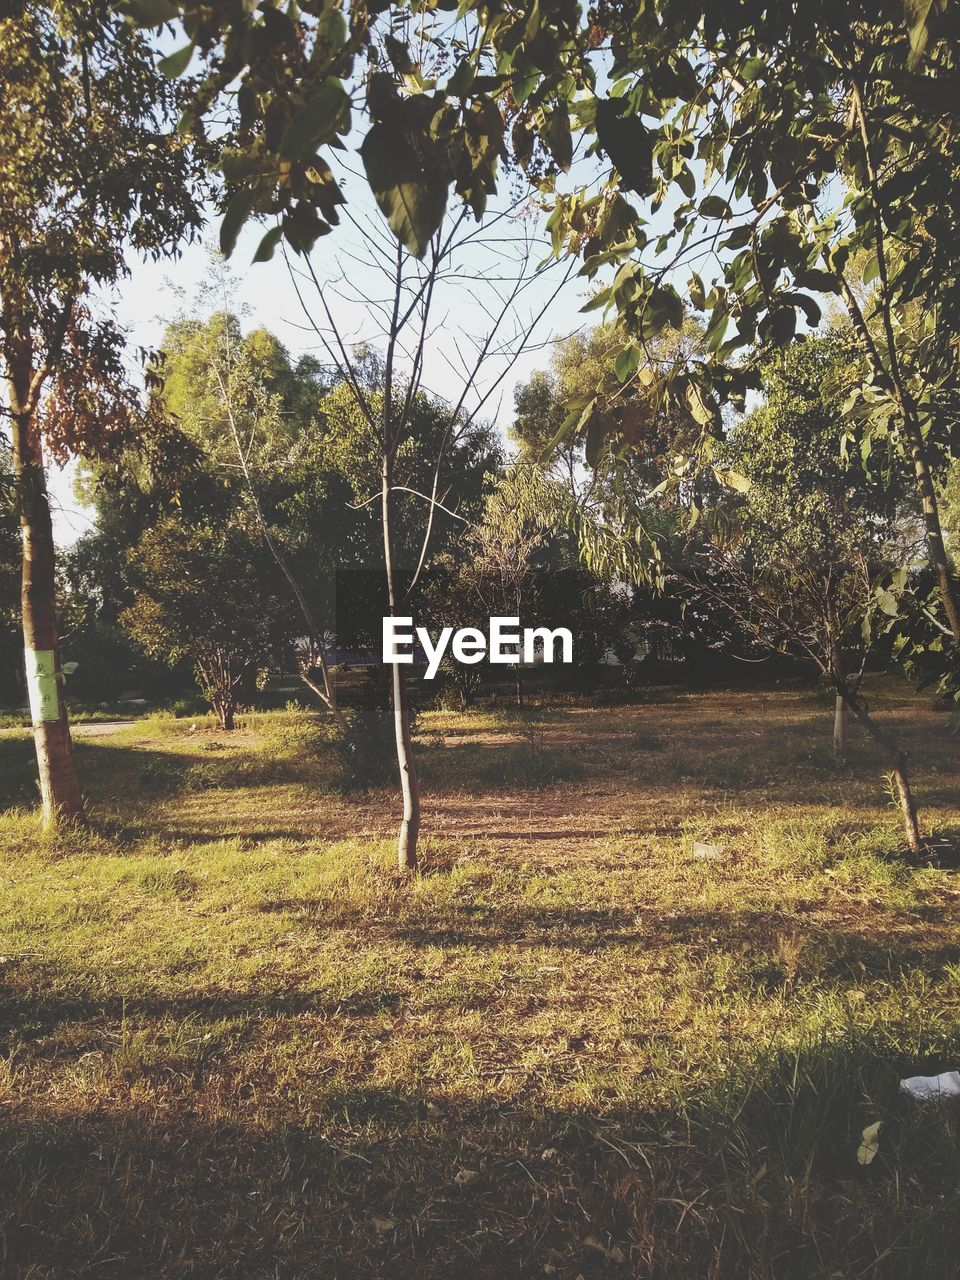 tree, plant, land, tranquility, growth, nature, day, forest, tranquil scene, grass, field, no people, beauty in nature, environment, landscape, sunlight, outdoors, non-urban scene, scenics - nature, green color